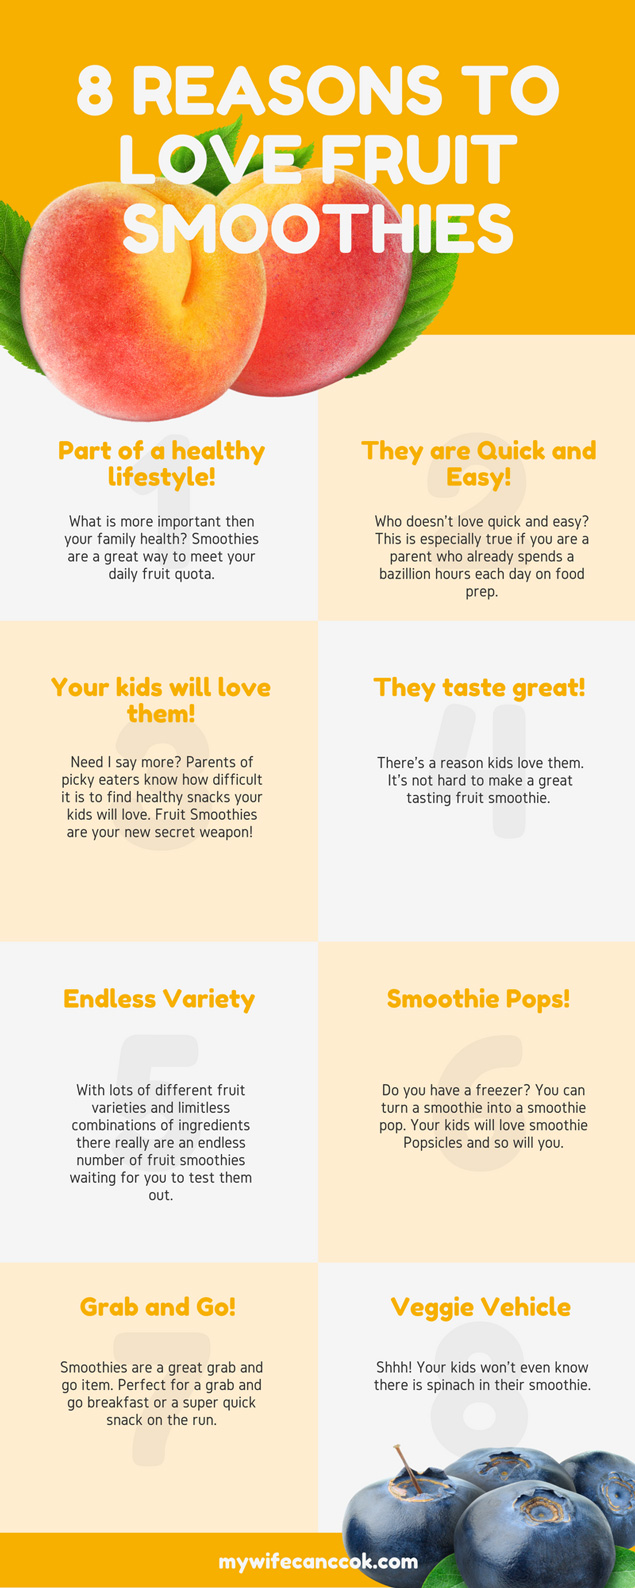 8 Reasons to Love Fruit Smoothies Infographic